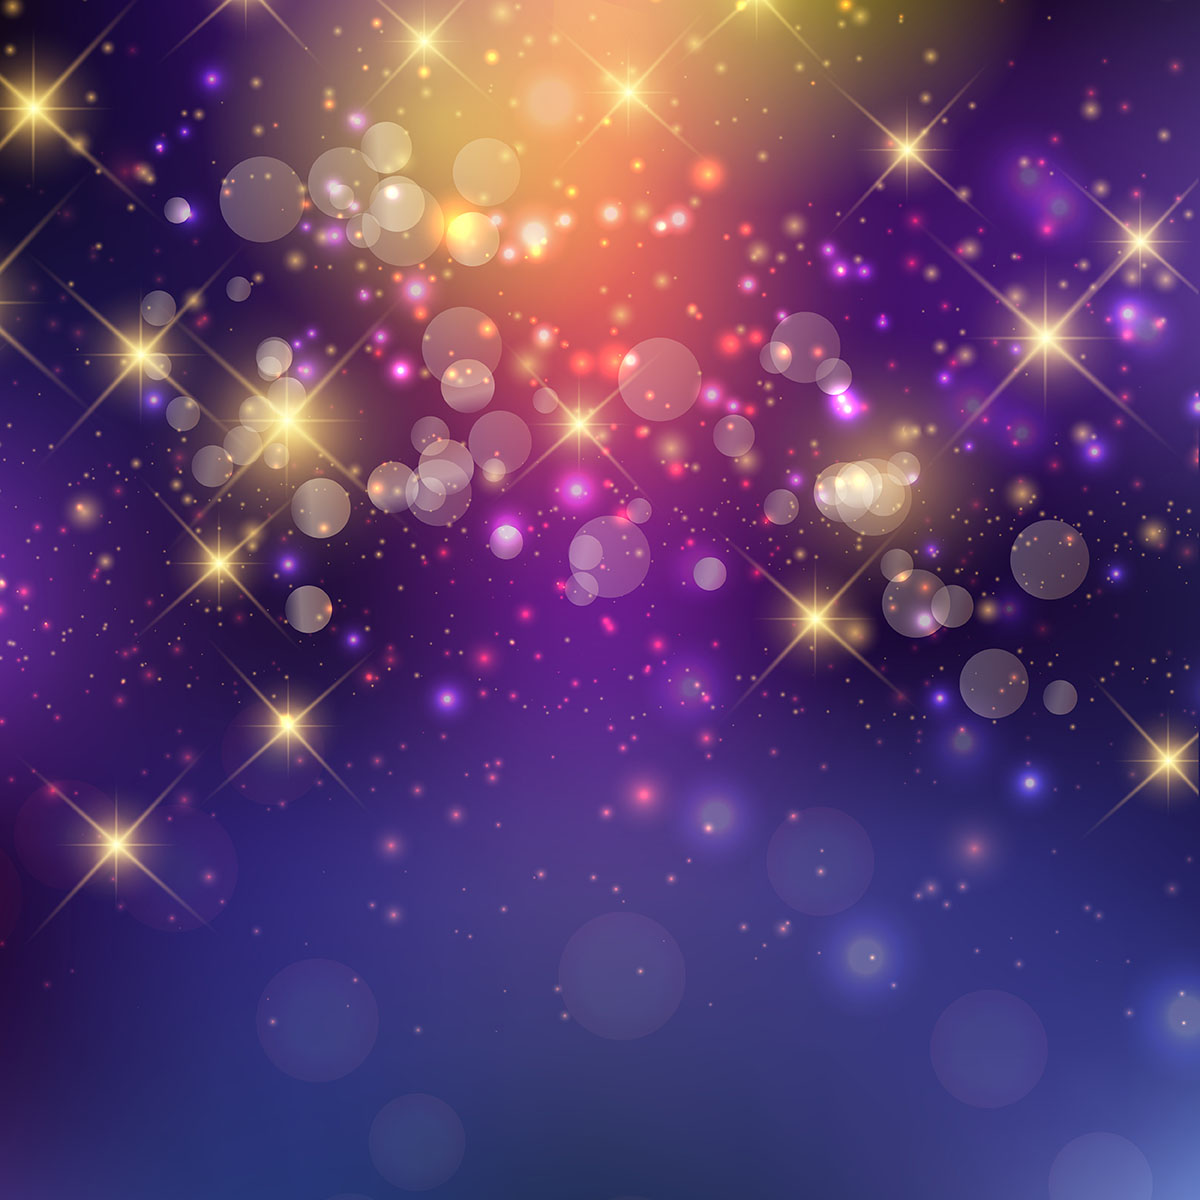 Bokeh lights background - Download Free Vectors, Clipart ...